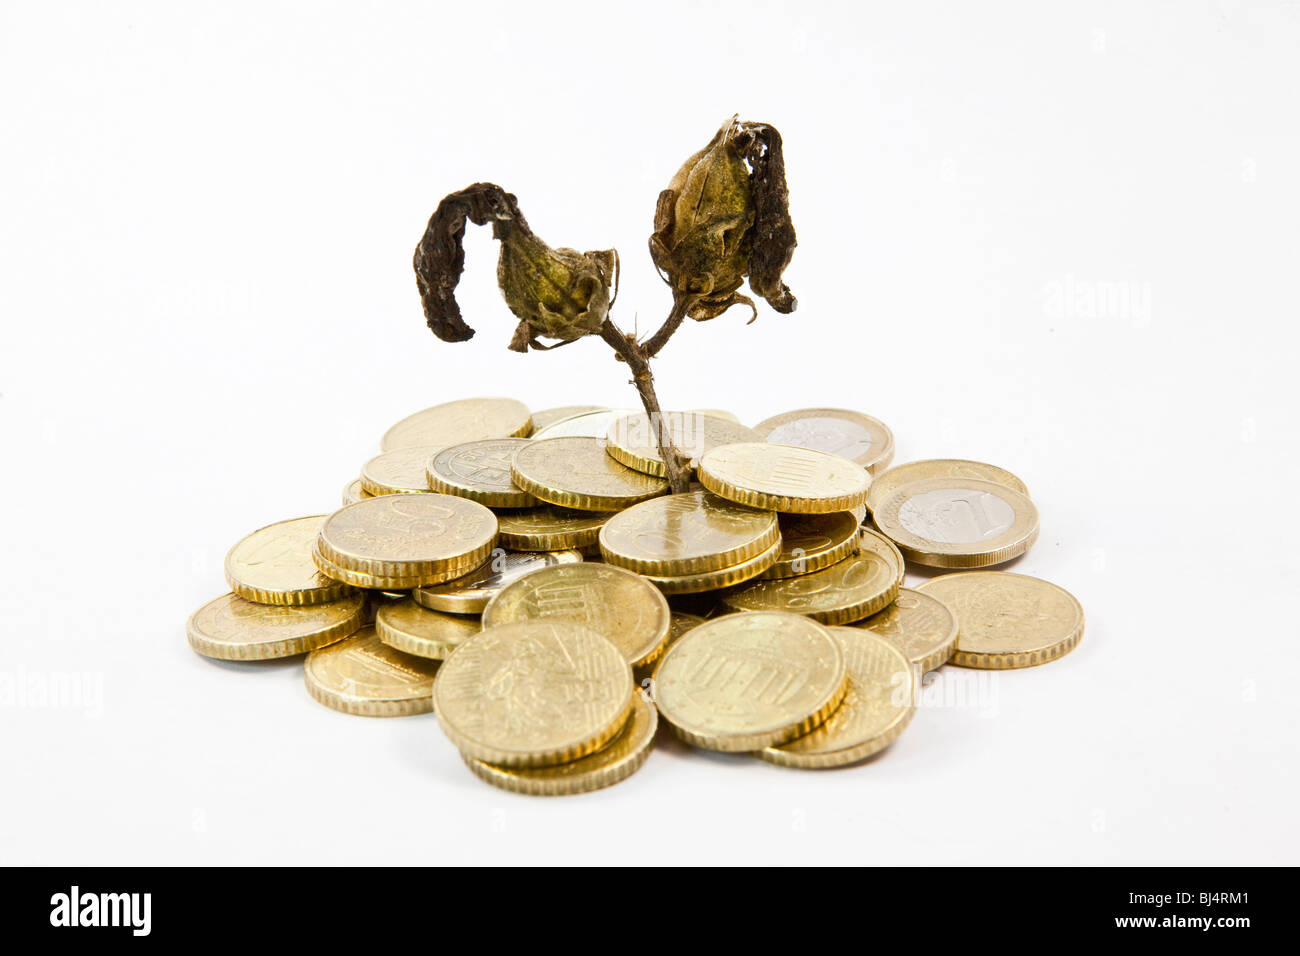 Withered plant, coins, symbolic image for failed investments, no return - Stock Image